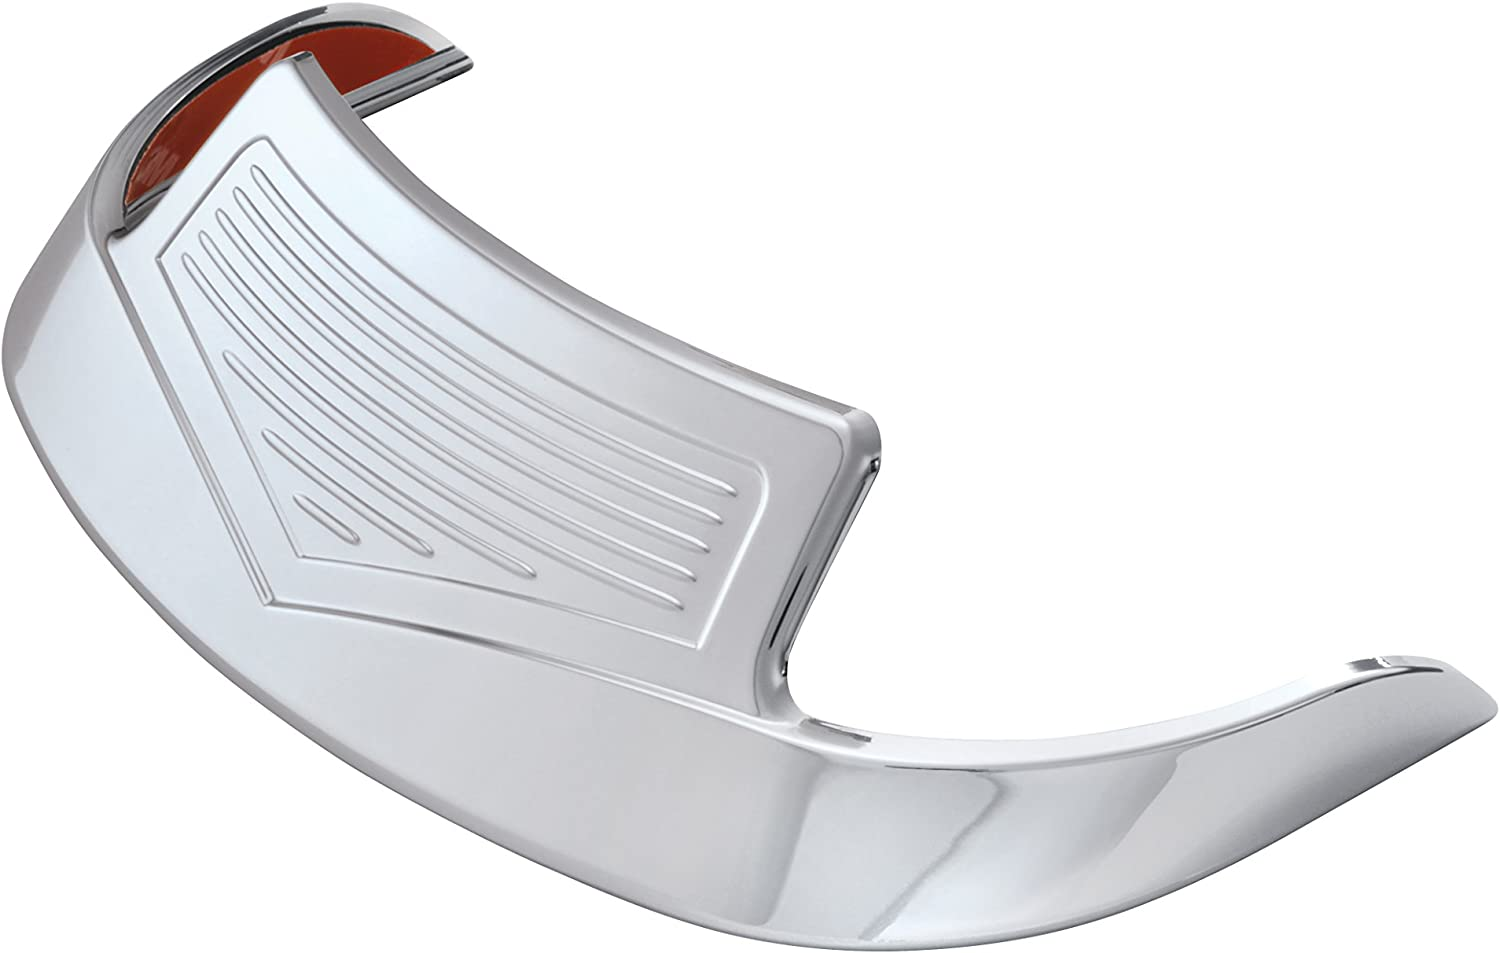 Popular popular Show Chrome Accessories 91-310 Ranking TOP15 Tip Front Accent Fender